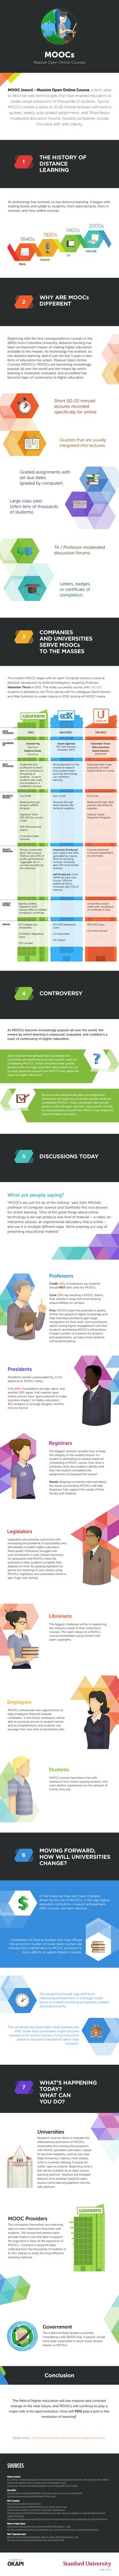 The Massive Open Online Courses Infographic why are #MOOCs so popular, how companies and universities serve MOOCs to the masses and what people are saying. #ydem